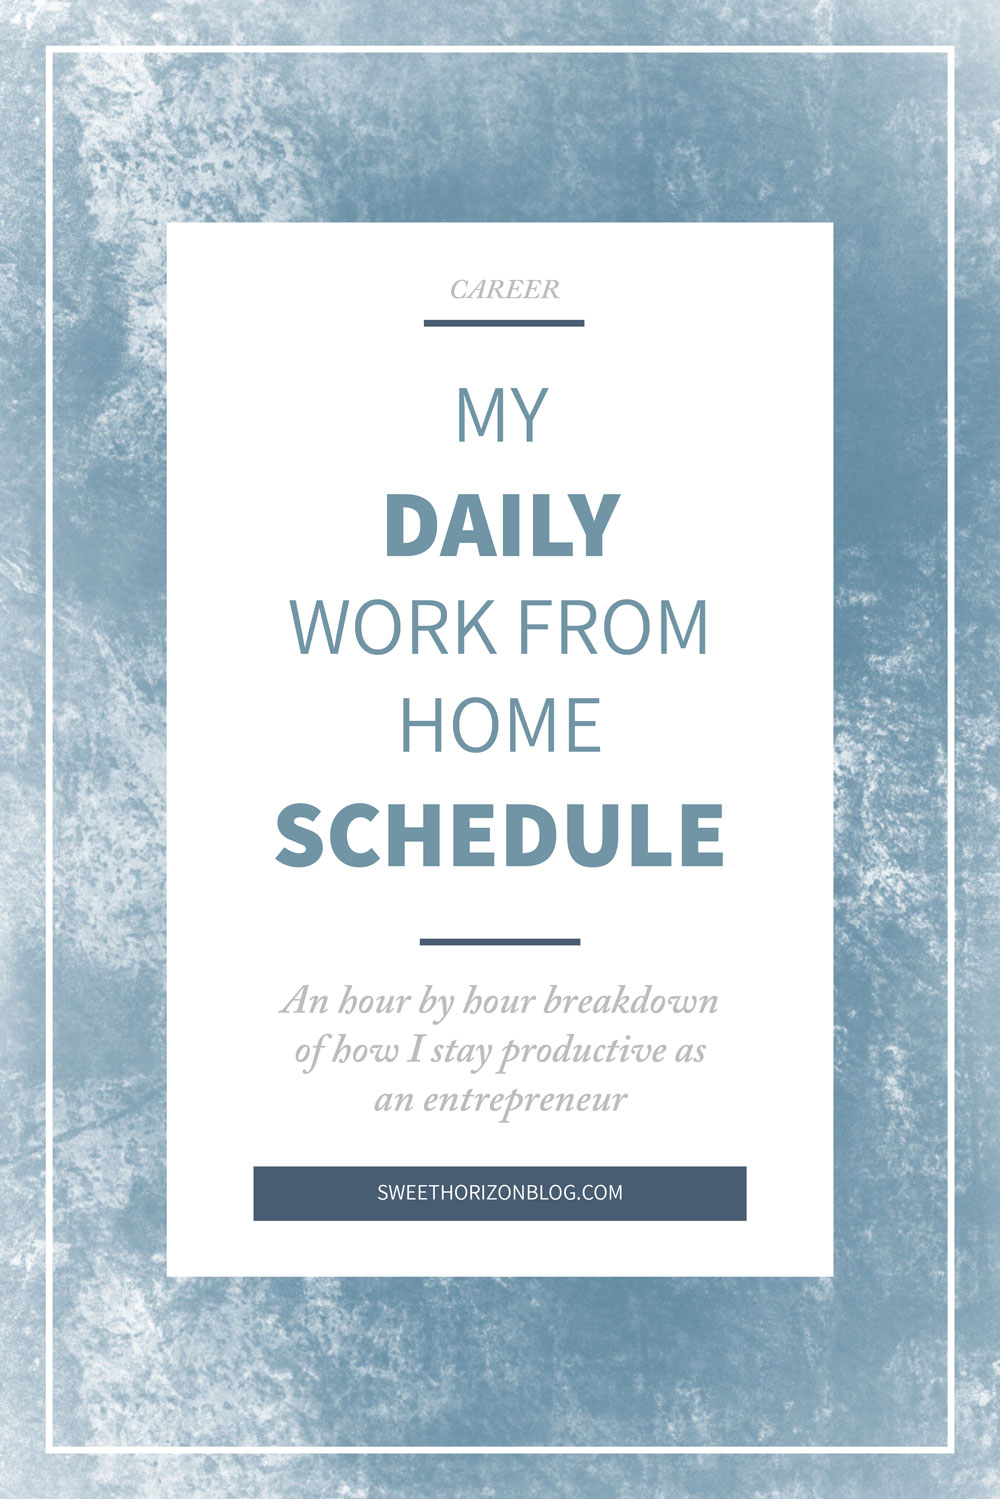 My Daily Working From Home Schedule from www.sweethorizonblog.com